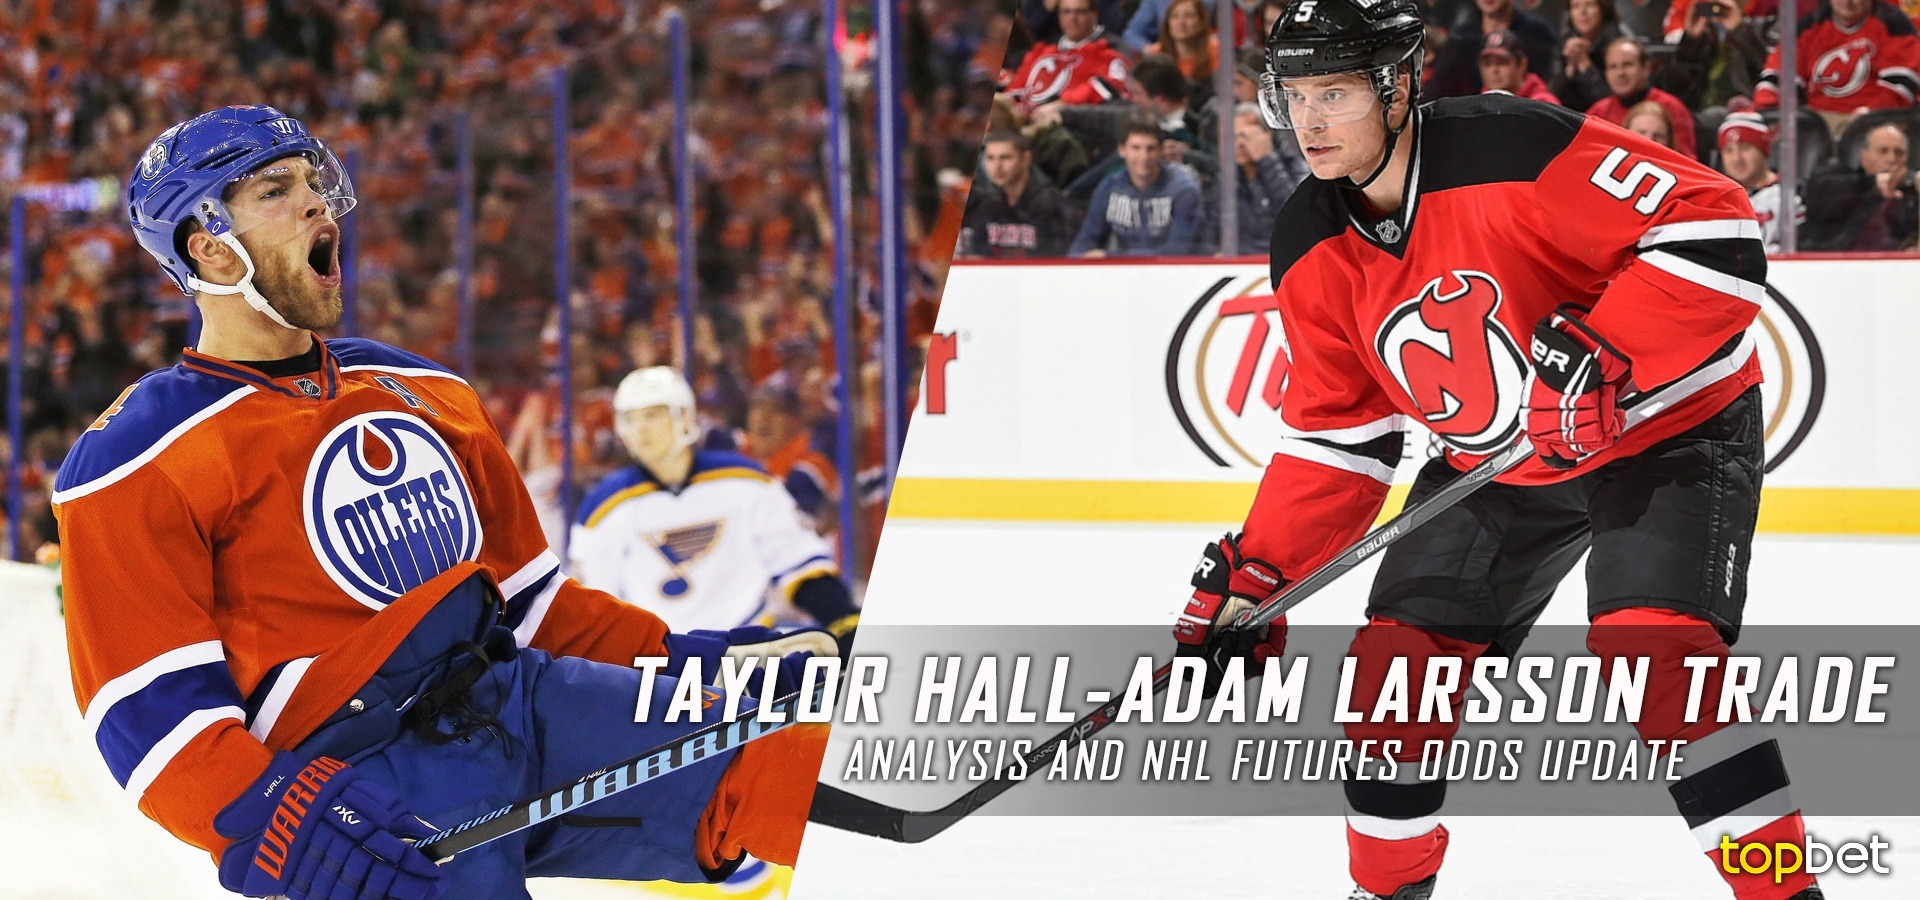 71b062b8094 How Does the Taylor Hall-Adam Larsson Trade Affect NHL Betting and Futures  Odds for 2016-17 Season